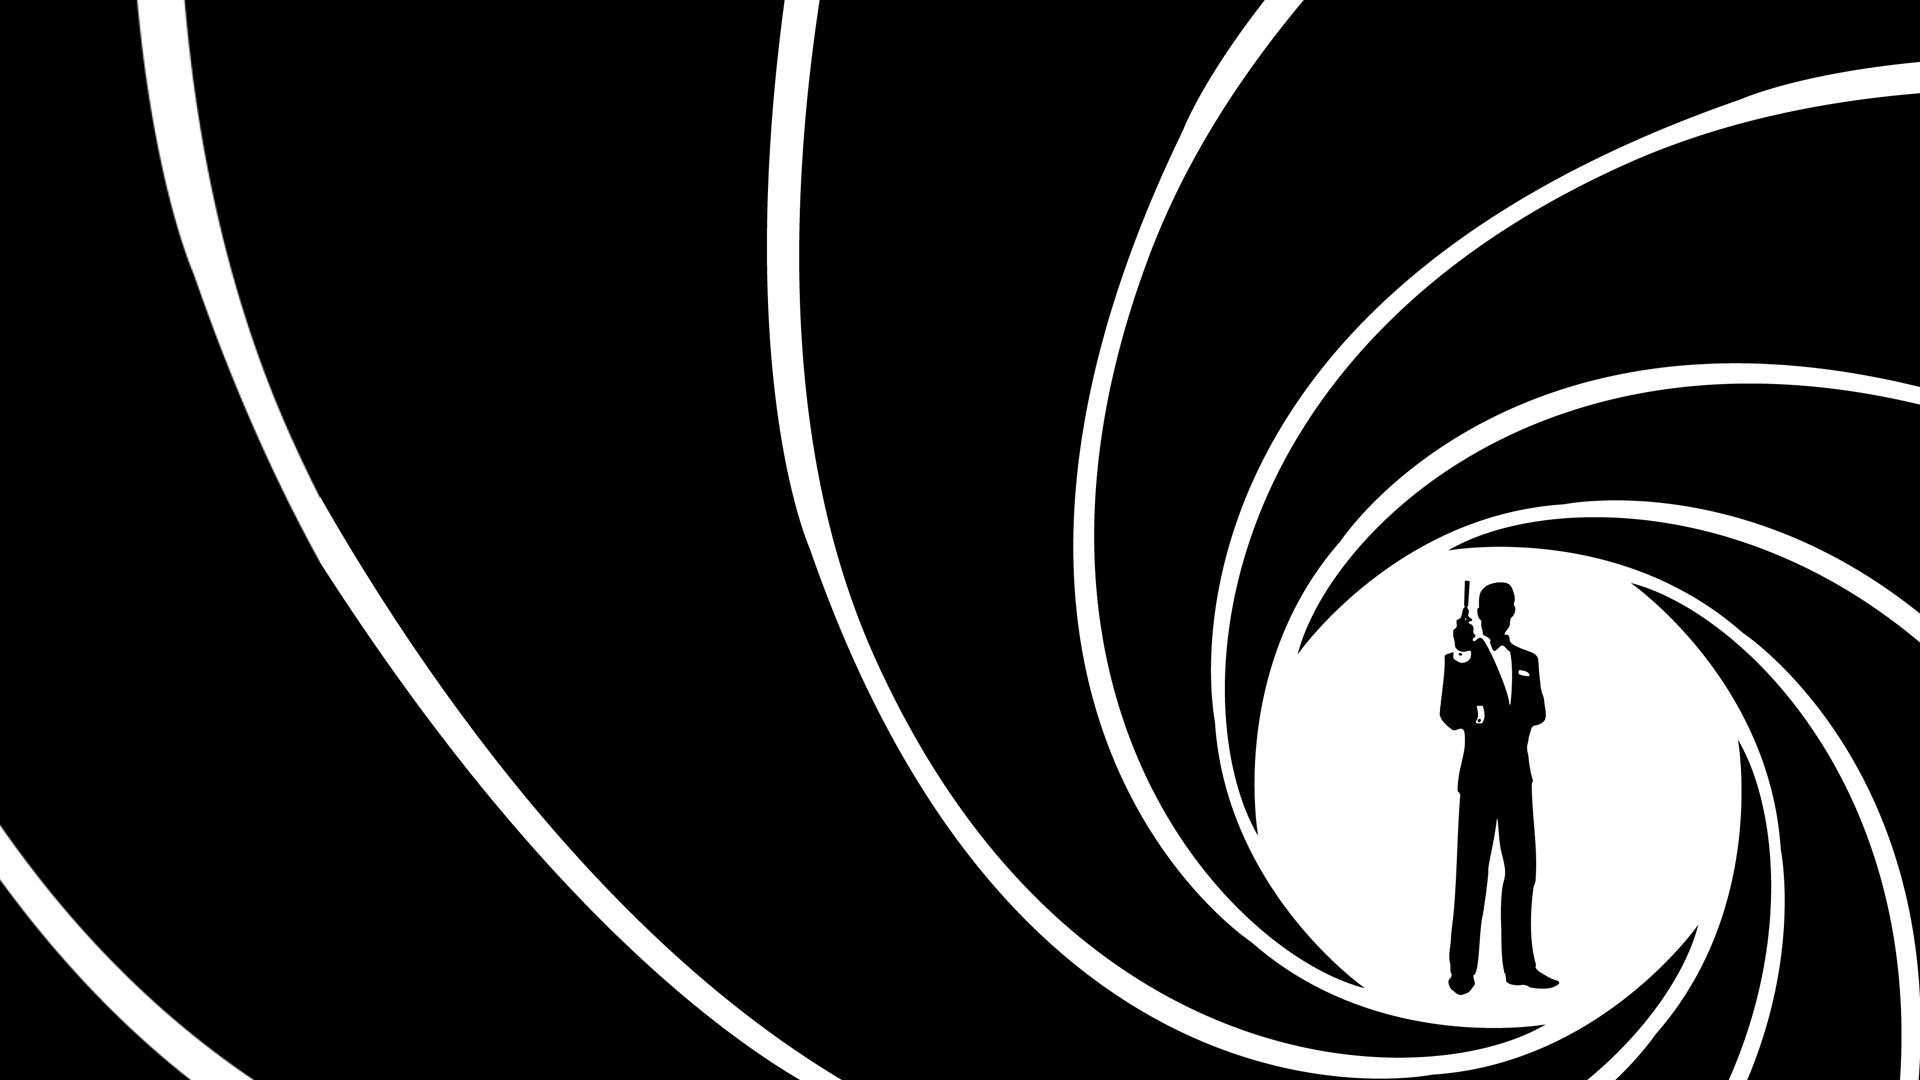 James Bond wallpaper 1920x1080 82823 1920x1080